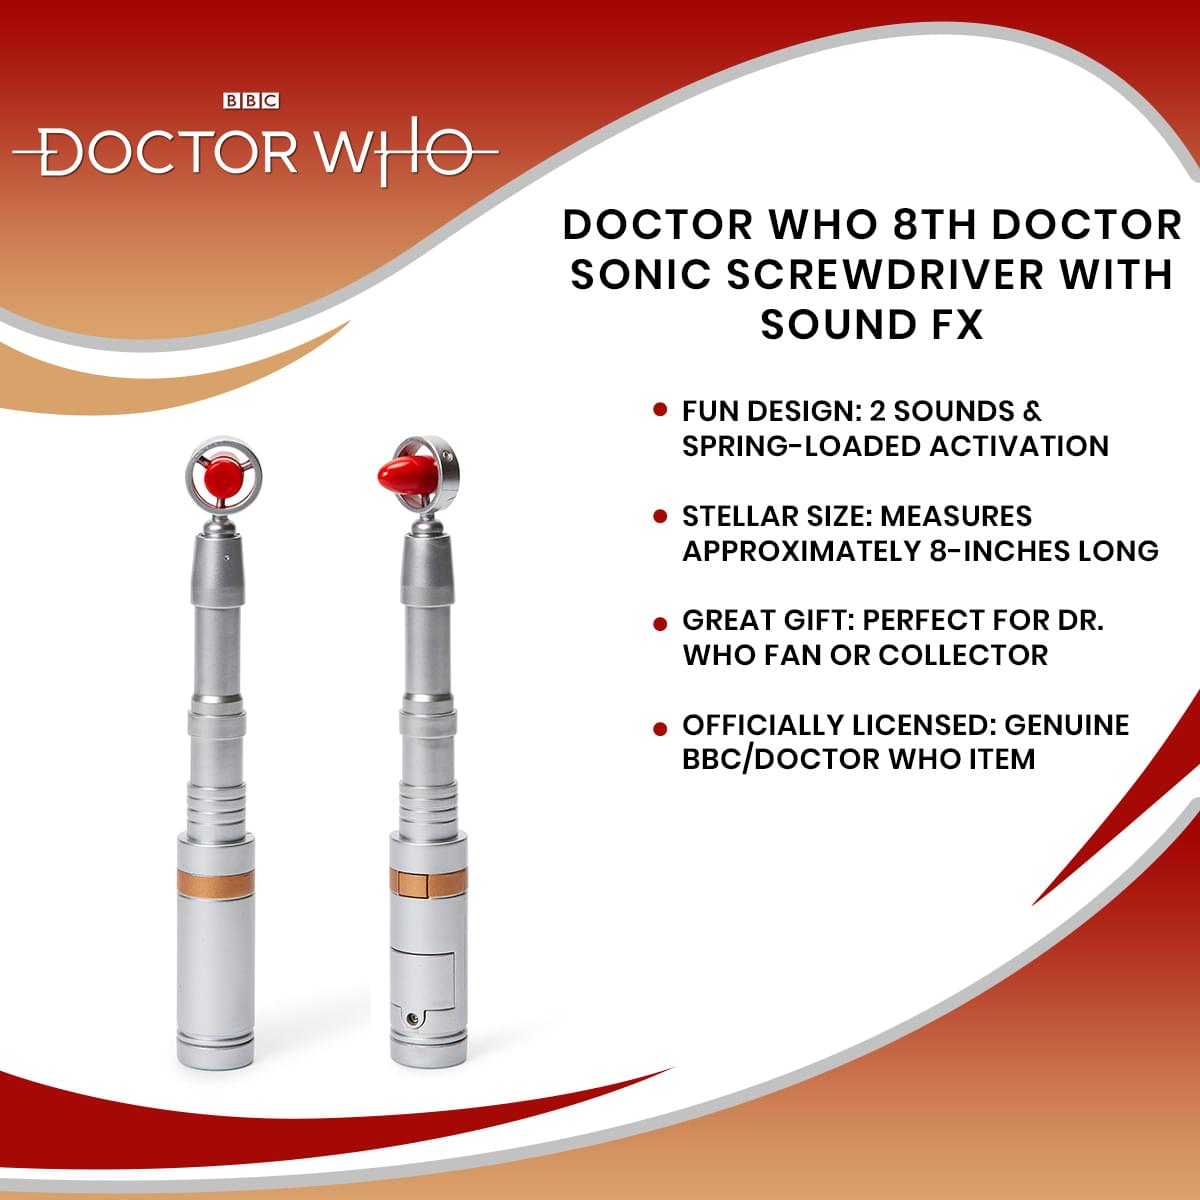 Doctor Who 8th Doctor Sonic Screwdriver With Sound FX